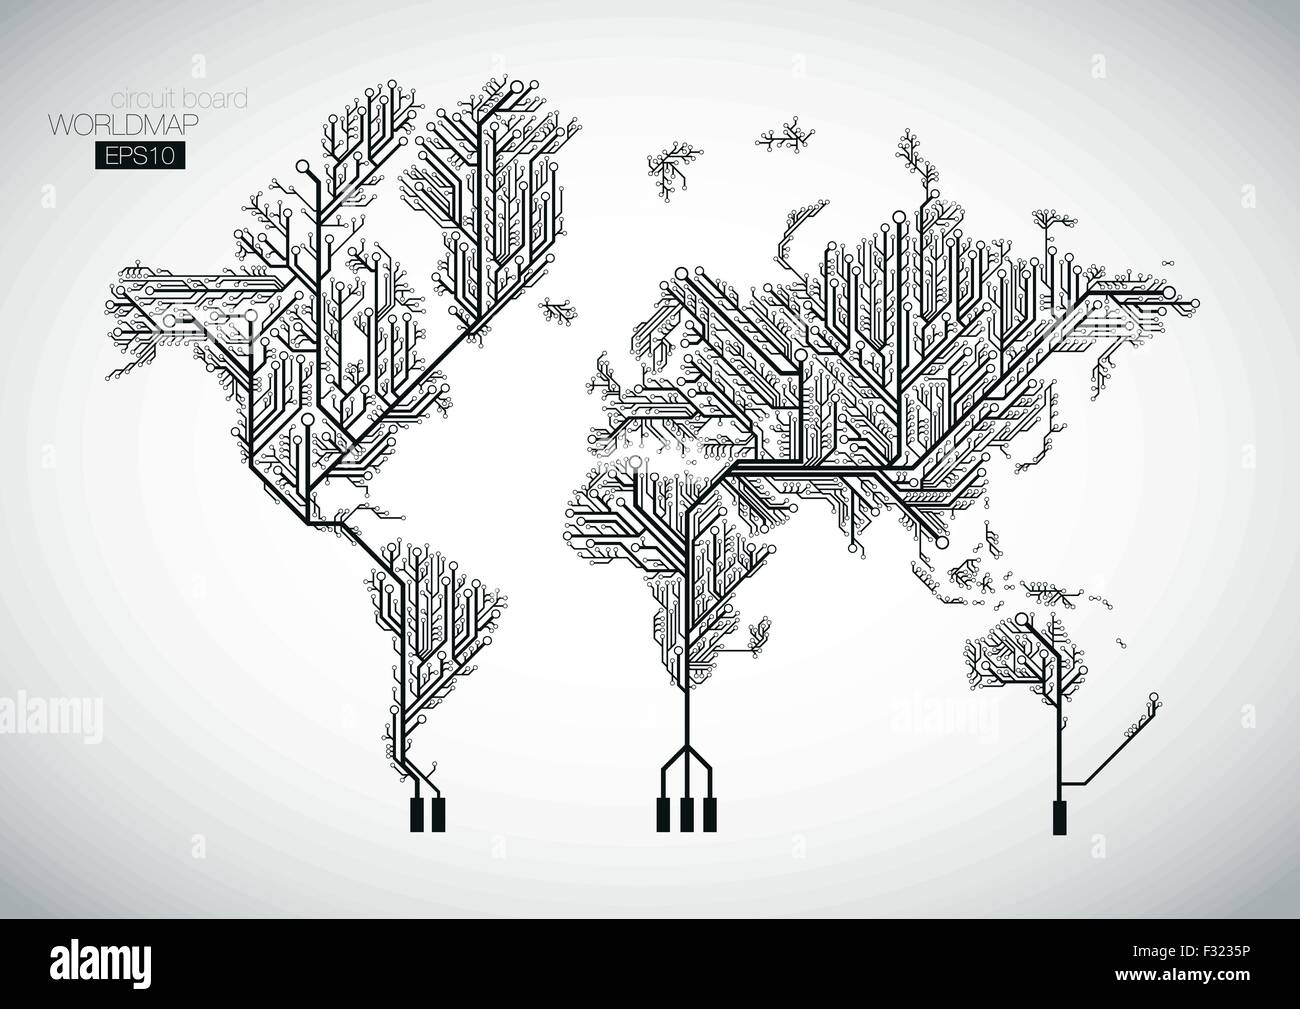 World map connected by circuit board lines vector background stock world map connected by circuit board lines vector background gumiabroncs Choice Image